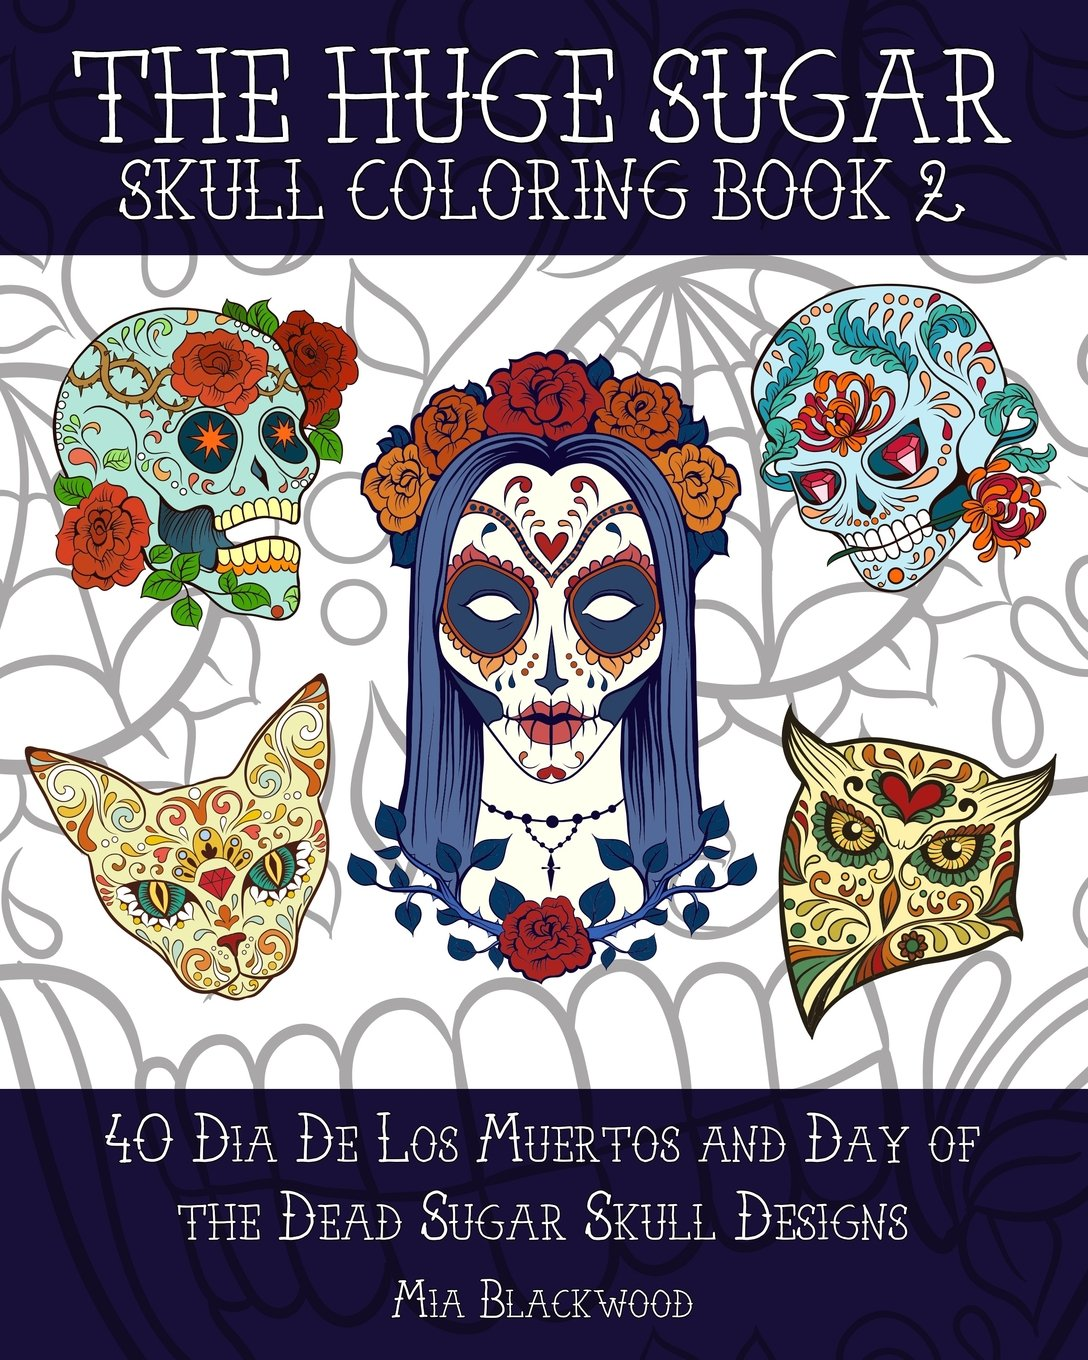 amazoncom 3 the huge sugar skull coloring book 2 40 dia de los muertos and day of the dead sugar skull designs day of the dead coloring books volume - Day Of The Dead Coloring Book